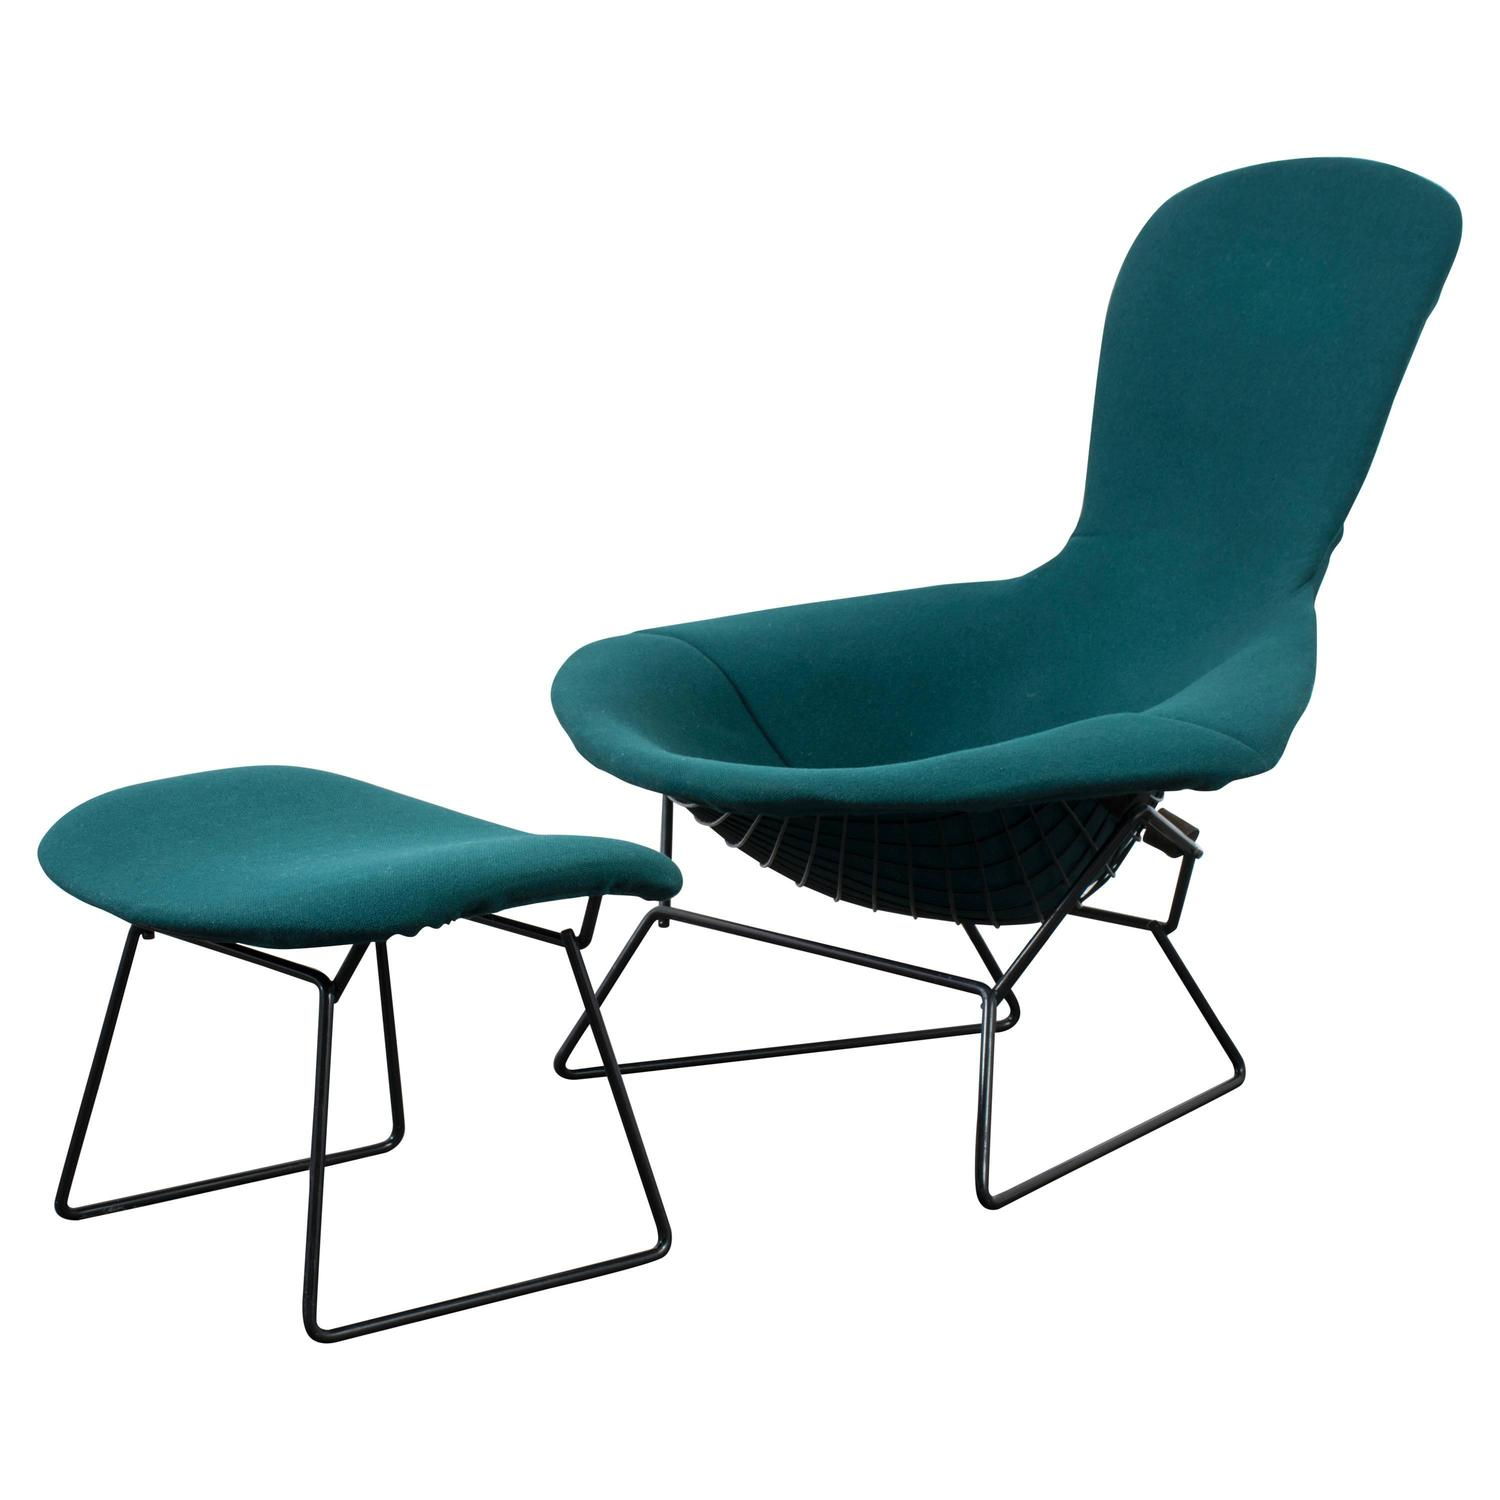 Vintage Bird Chair and Ottoman by Harry Bertoia for Knoll at 1stdibs